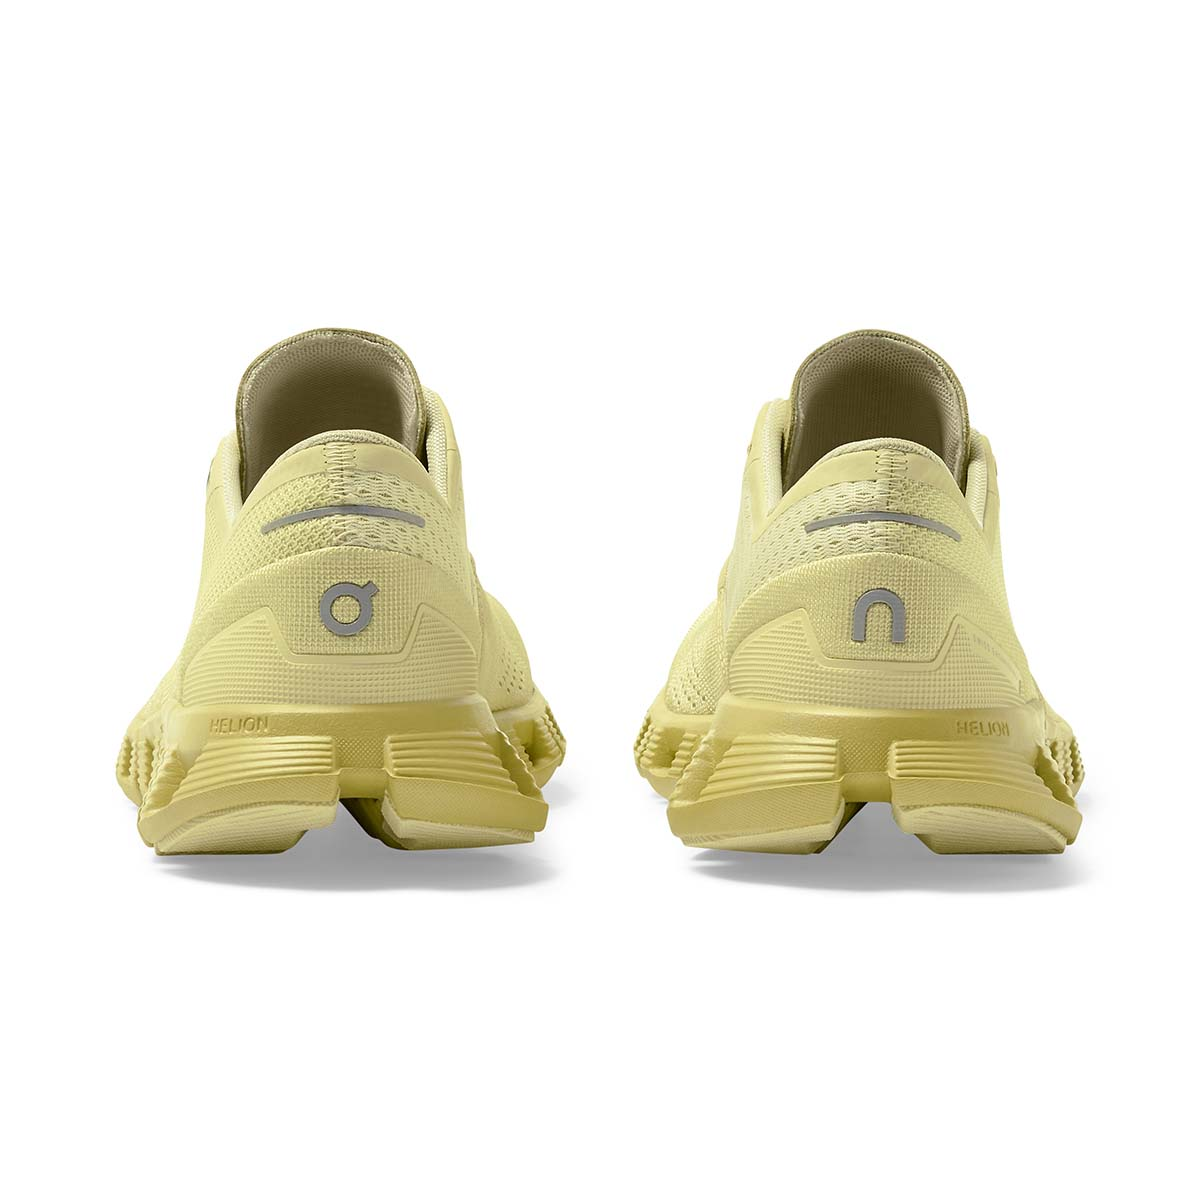 Women's On Cloud X 2.0 Running Shoe - Color: Glade/Citron - Size: 5 - Width: Regular, Glade/Citron, large, image 6